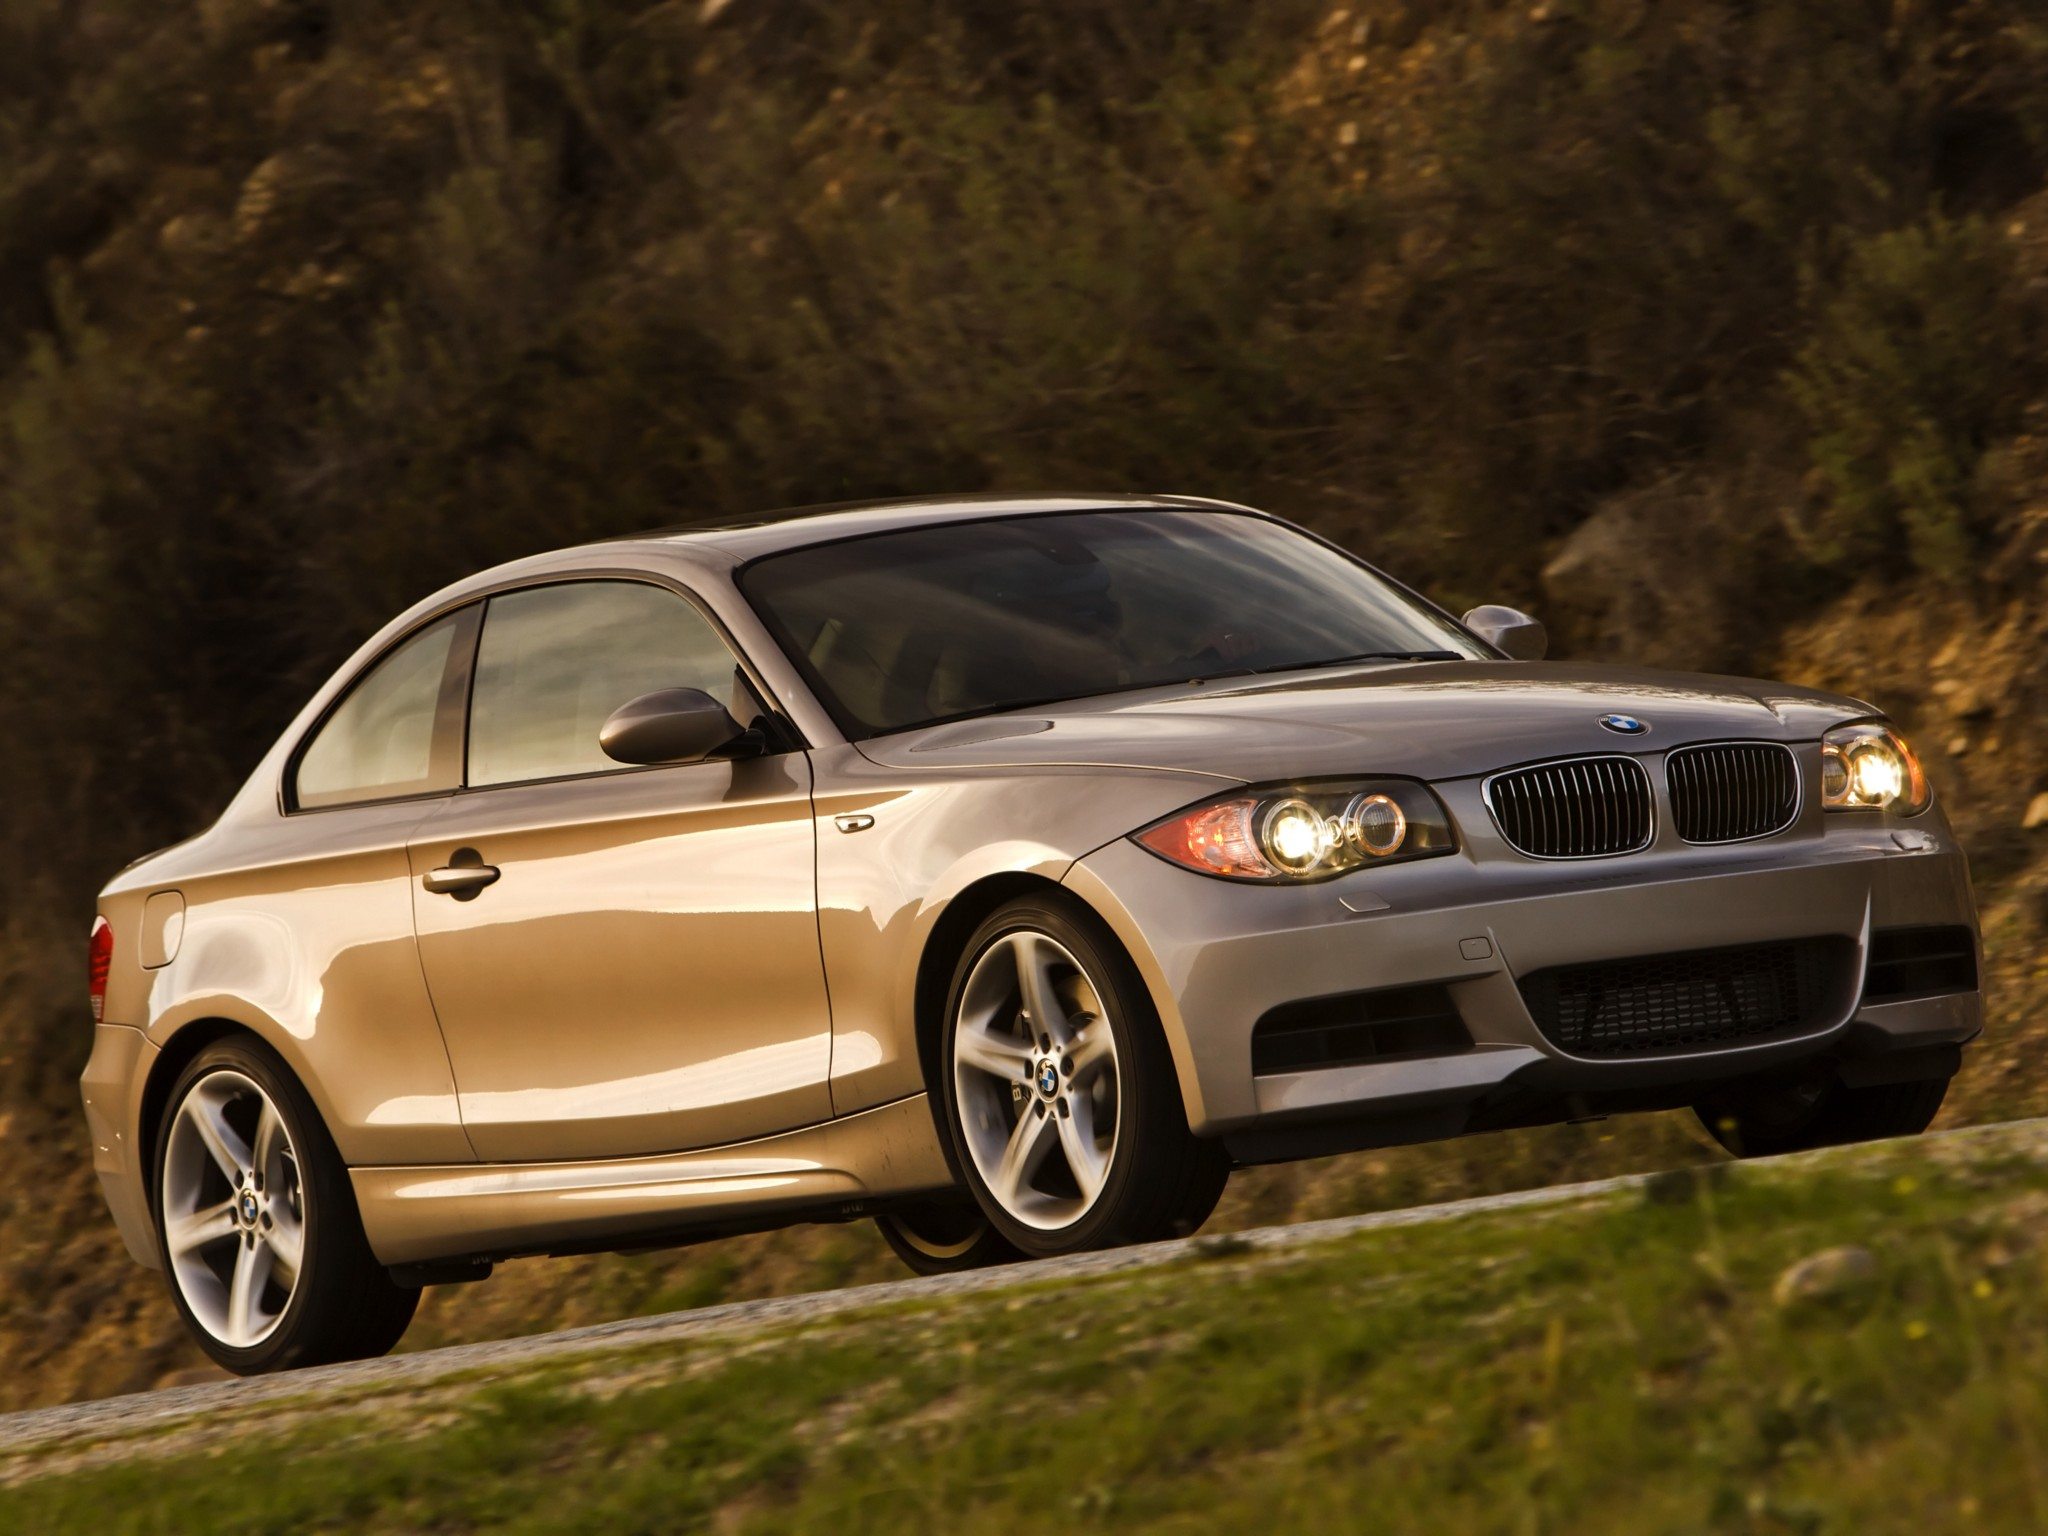 BMW 135i Coupe US spec E82 Wallpapers Car wallpapers HD 2048x1536